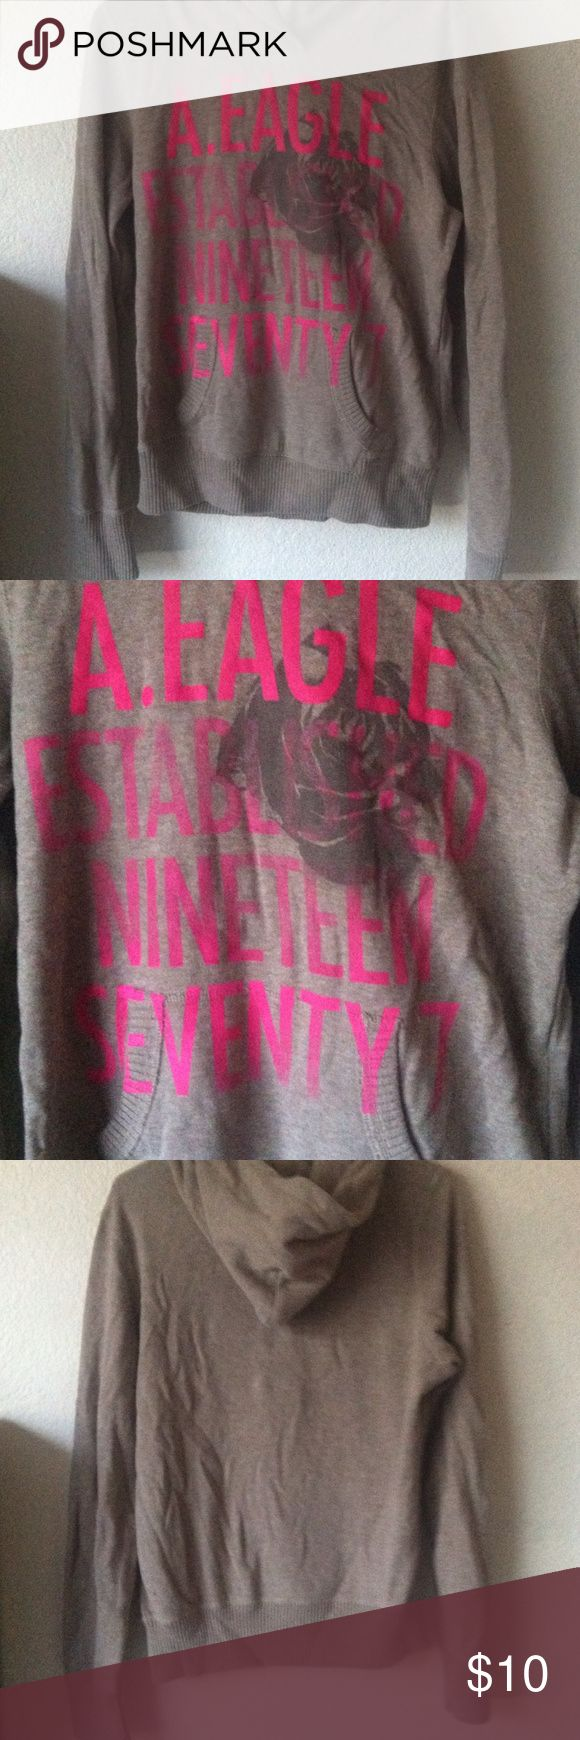 American eagle sweatshirt Good condition worn many times American Eagle Outfitters Jackets & Coats